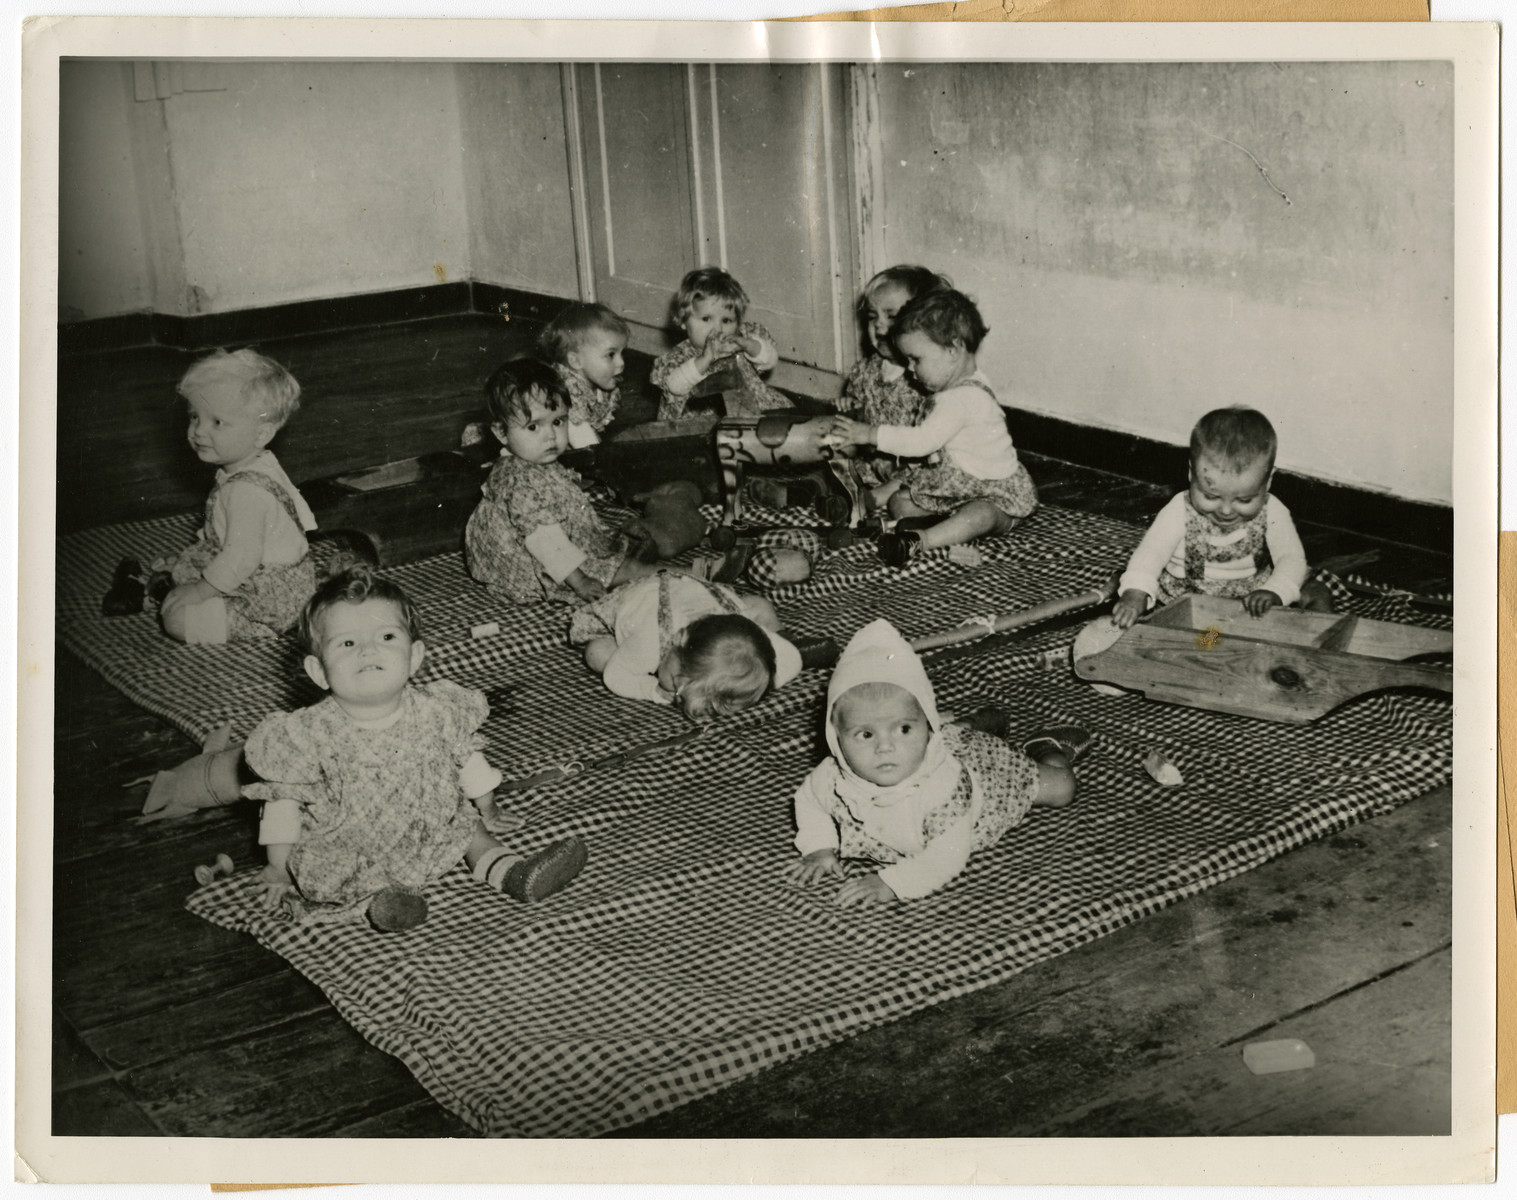 """Orphans, found by U.S. troops in Germany, play in the infant/toddler room of Kloster Indersdorf.  The original caption reads: """"Orphans of Indersdorf, Bavaria Orphans of 12 nations have found a new home in a former nunnery at Indersdorf, Bavaria, where UNRRA (United Nations Relief and Rehabilitation Administration) recently opened an international refuge for children found by the U.S. Army in Germany. Hundreds of helpless children whose parents were killed or lost during the war were sent from Nazi foreign labor and concentration camps to this institution. Two- thirds of the group are Polish and Jewish. Some are too young to remember their parents and others do not know their own names. Most of these from the concentration camps have no other identification than a number and the letters """"KL"""" (Konzentrations Lager) marked on their skins. When children arrive at the institution, they are deloused, bathed and given clean clothes. Medical attendants then innoculate them against typhoid fever, diptheria, and smallpox. The infants are cared for by nurses while older children begin elementary education in their own language under teachers of the Allied nations.   This photo shows: Orphan children, found by the U.S. troops advancing into Germany during the war, frolic happily in the playroom of the institution."""""""